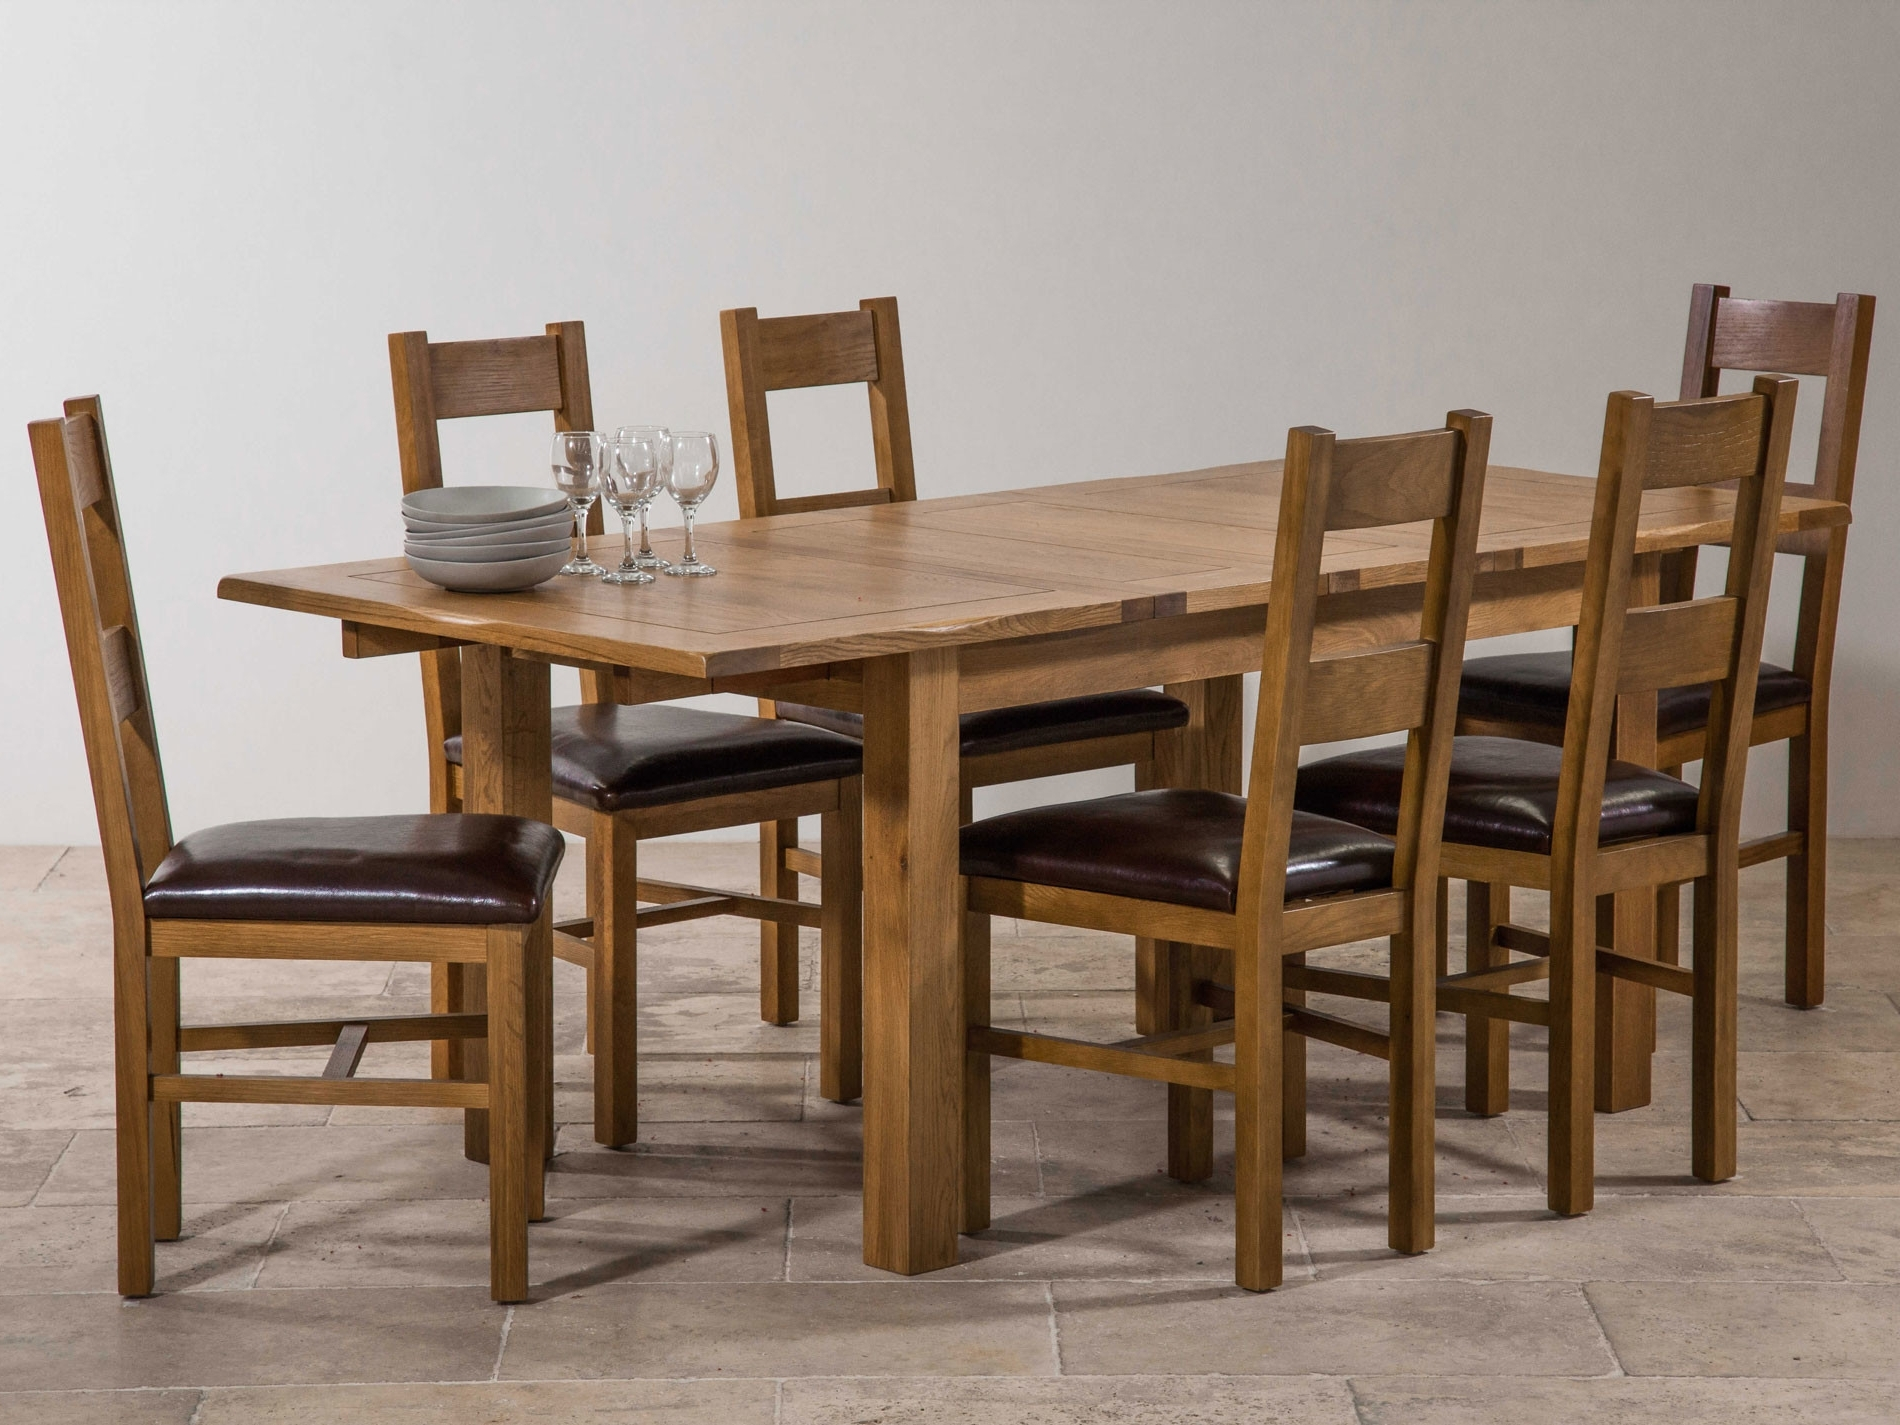 Chunky Solid Oak Dining Tables And 6 Chairs With Well Known Enchanting Extendable Dining Table 3Ft Dining Table Sets On White (View 8 of 25)